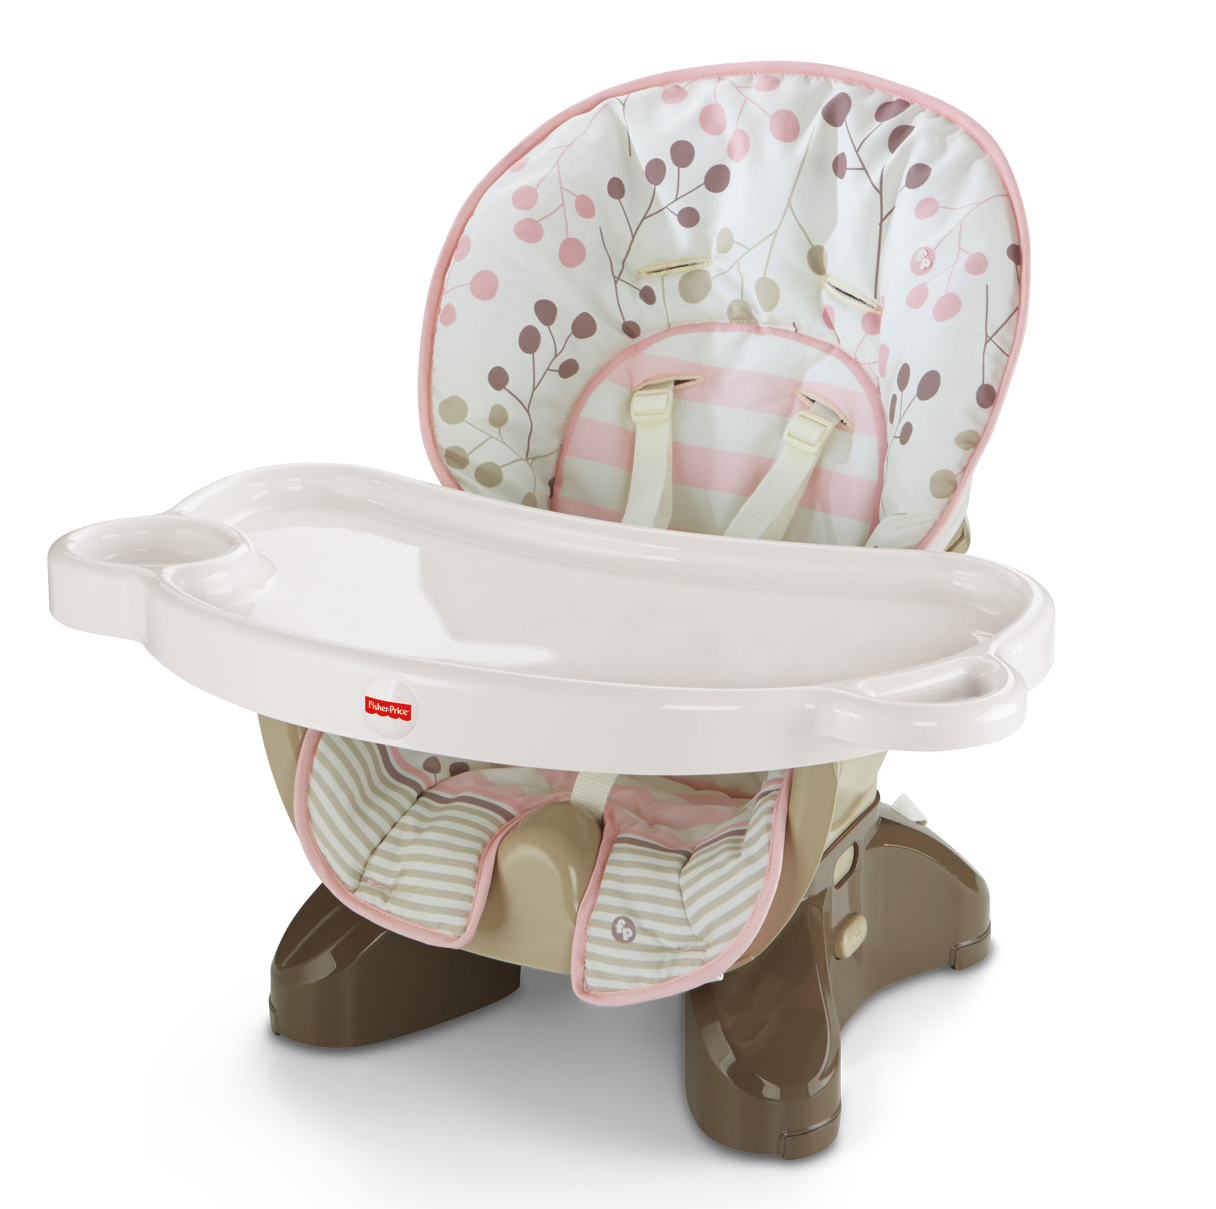 fisher price spacesaver high chair cover walmart chairs outdoor berry com departments